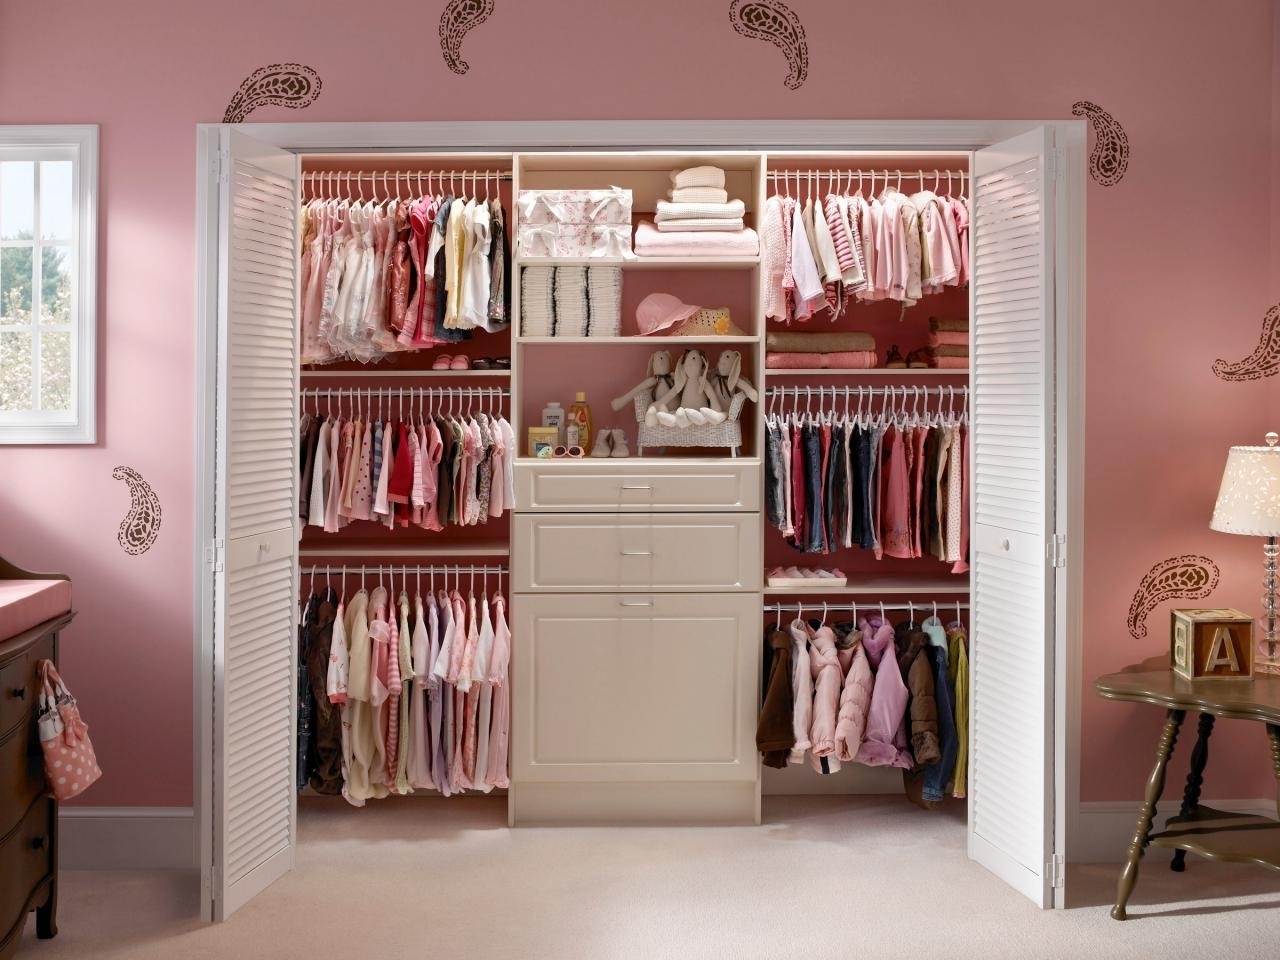 Hgtv Within Most Current Wardrobes For Baby Clothes (View 4 of 15)